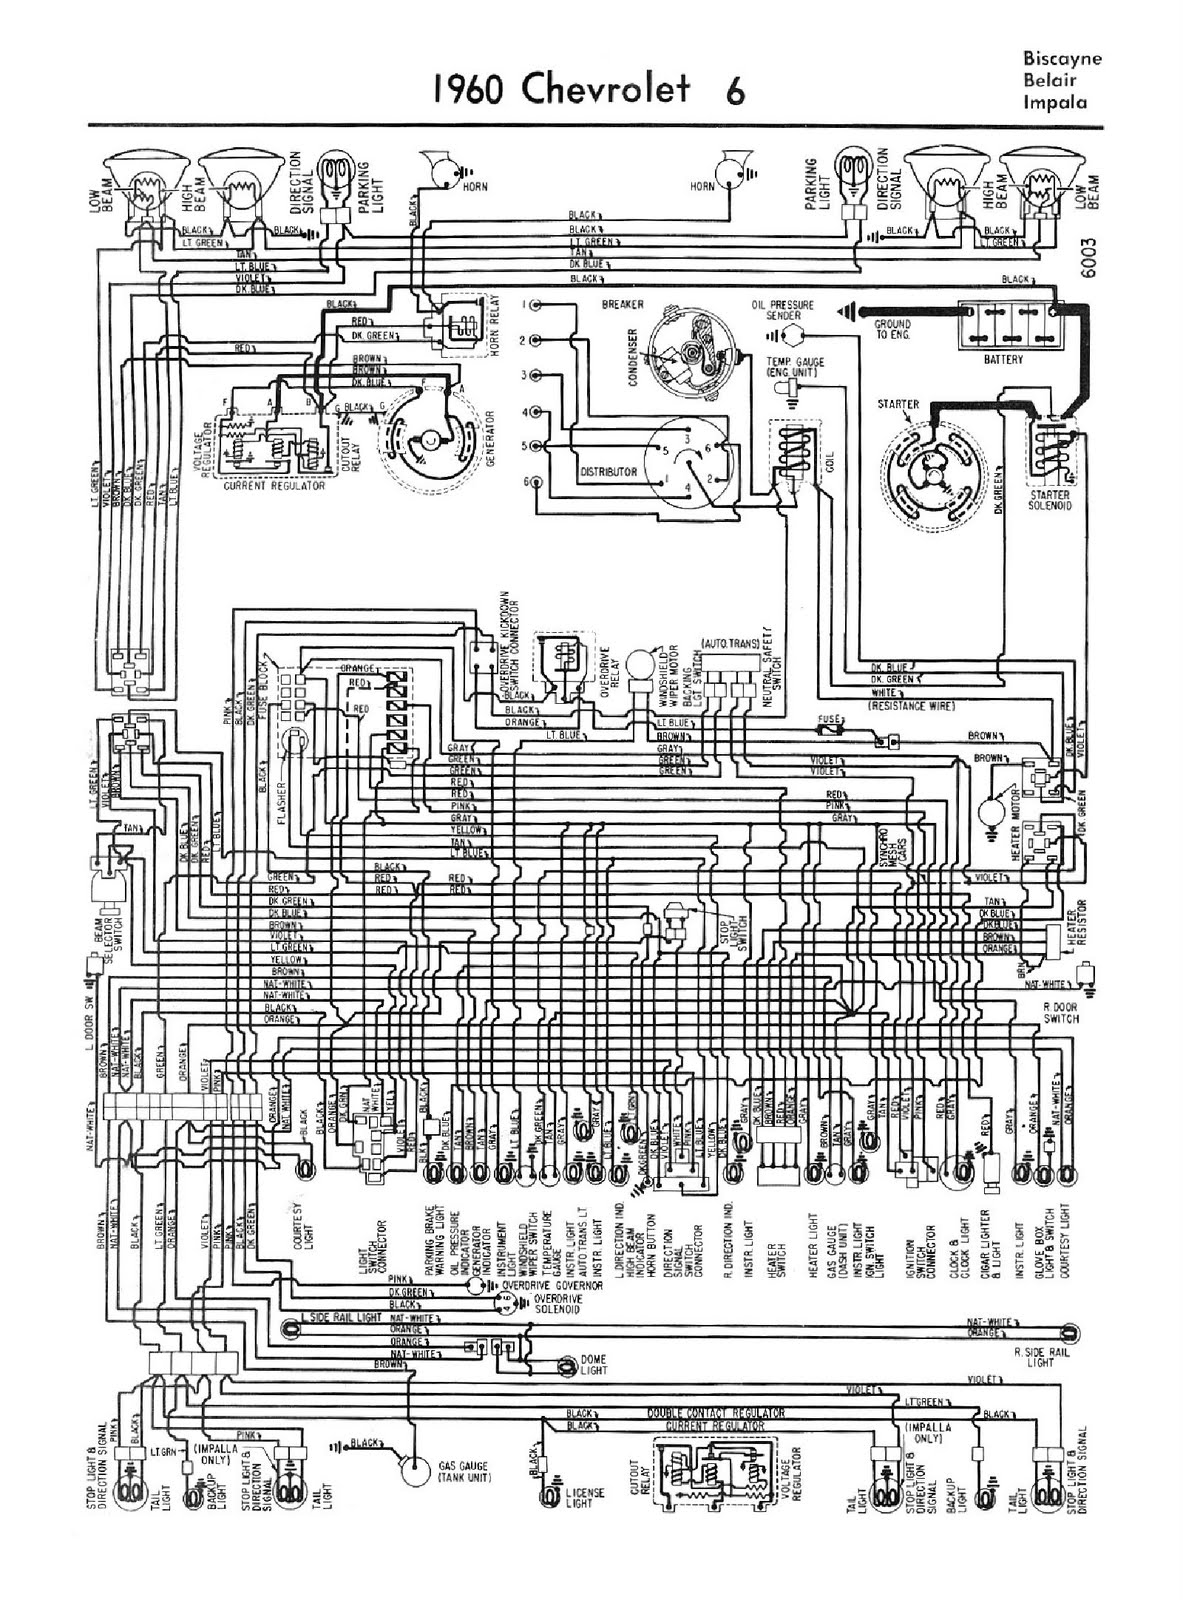 1964 Chevrolet C10 Wiring Diagram Lily Flower Parts Chevy Truck Fuse Box Free Image